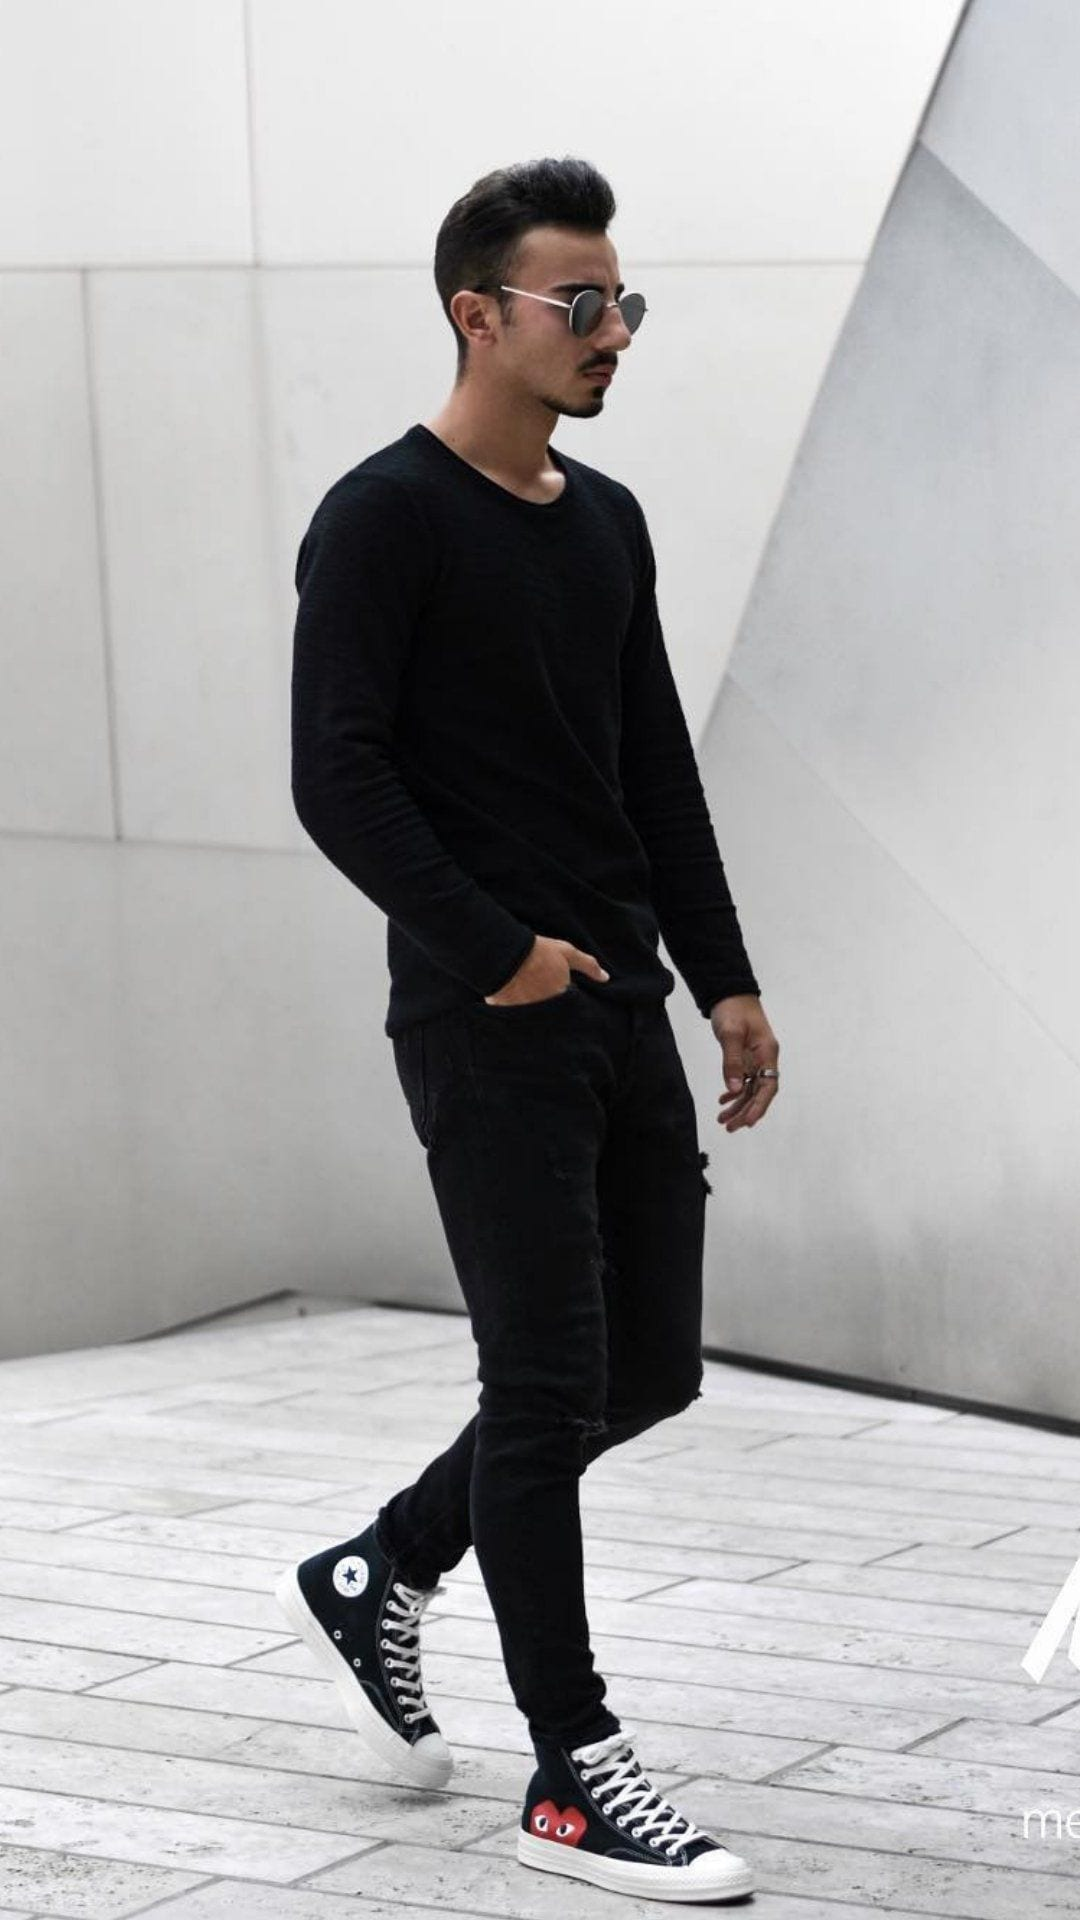 Casual_outfits_for_young_guys_3-1 Cute Outfits for Skinny Guys - Styling Tips With New Trends